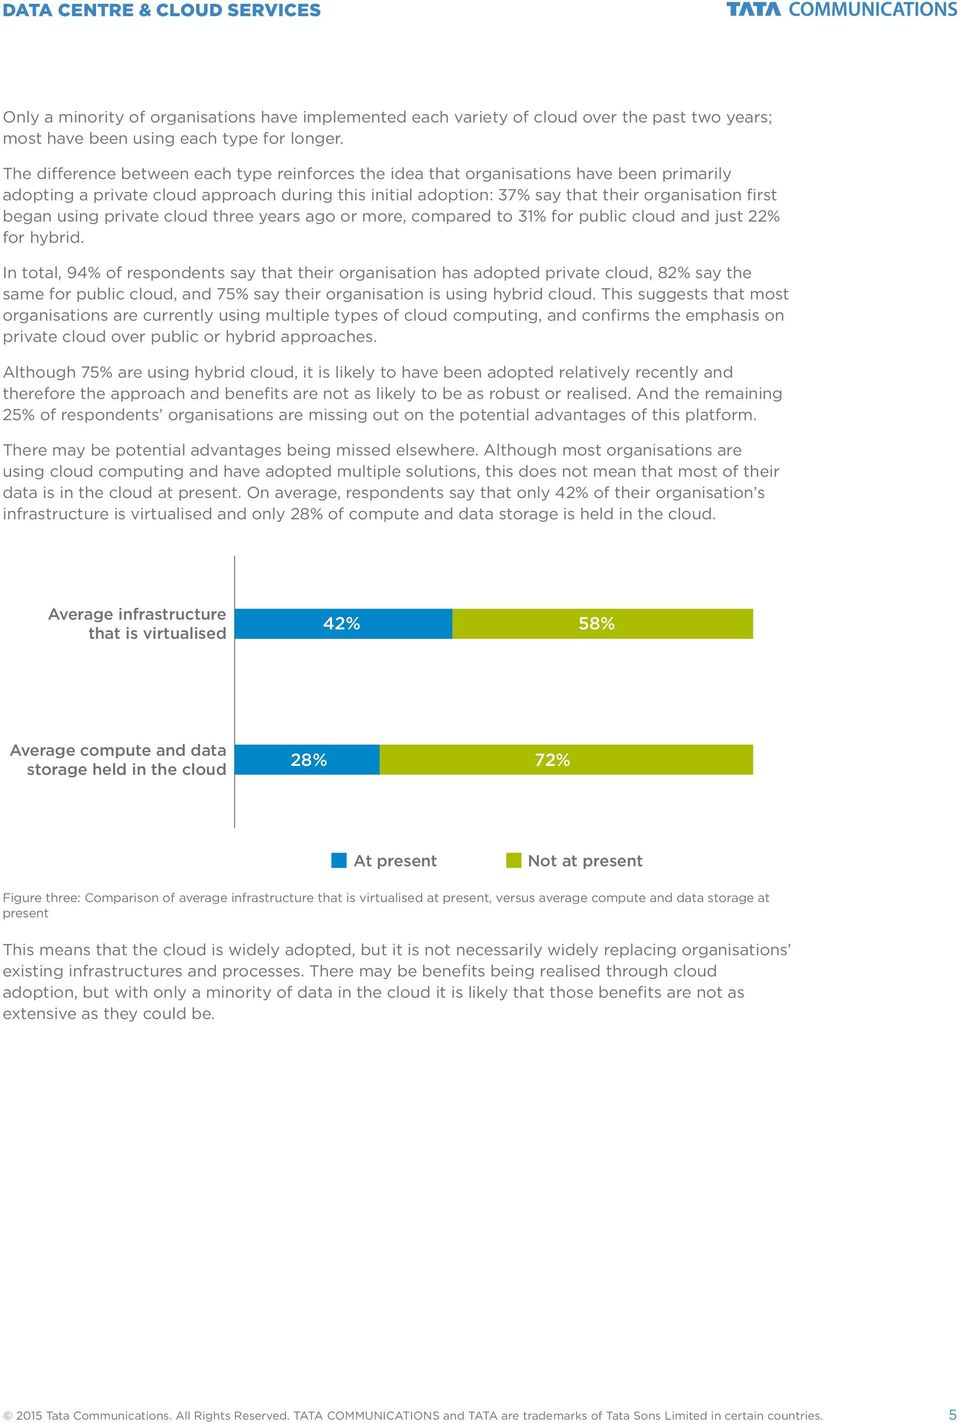 using private cloud three years ago or more, compared to 31% for public cloud and just 22% for hybrid.